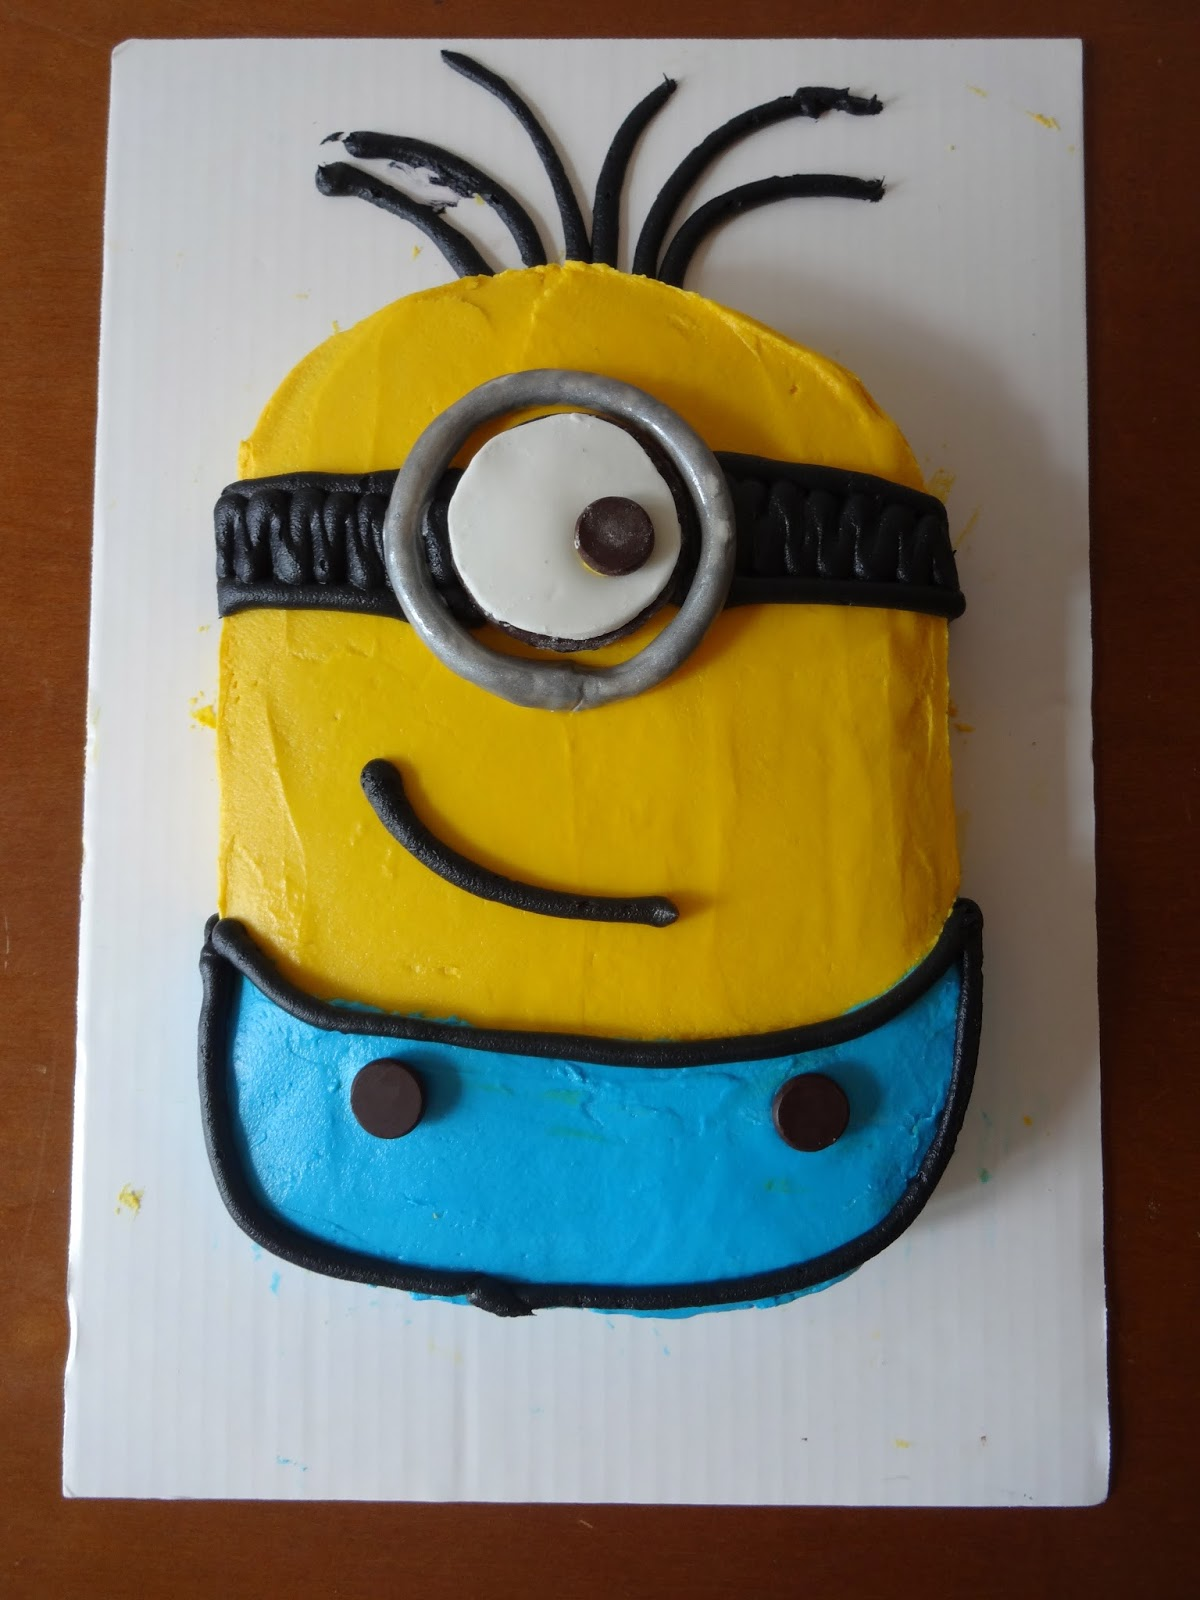 Miraculous Minion Cakes Decoration Ideas Little Birthday Cakes Personalised Birthday Cards Paralily Jamesorg